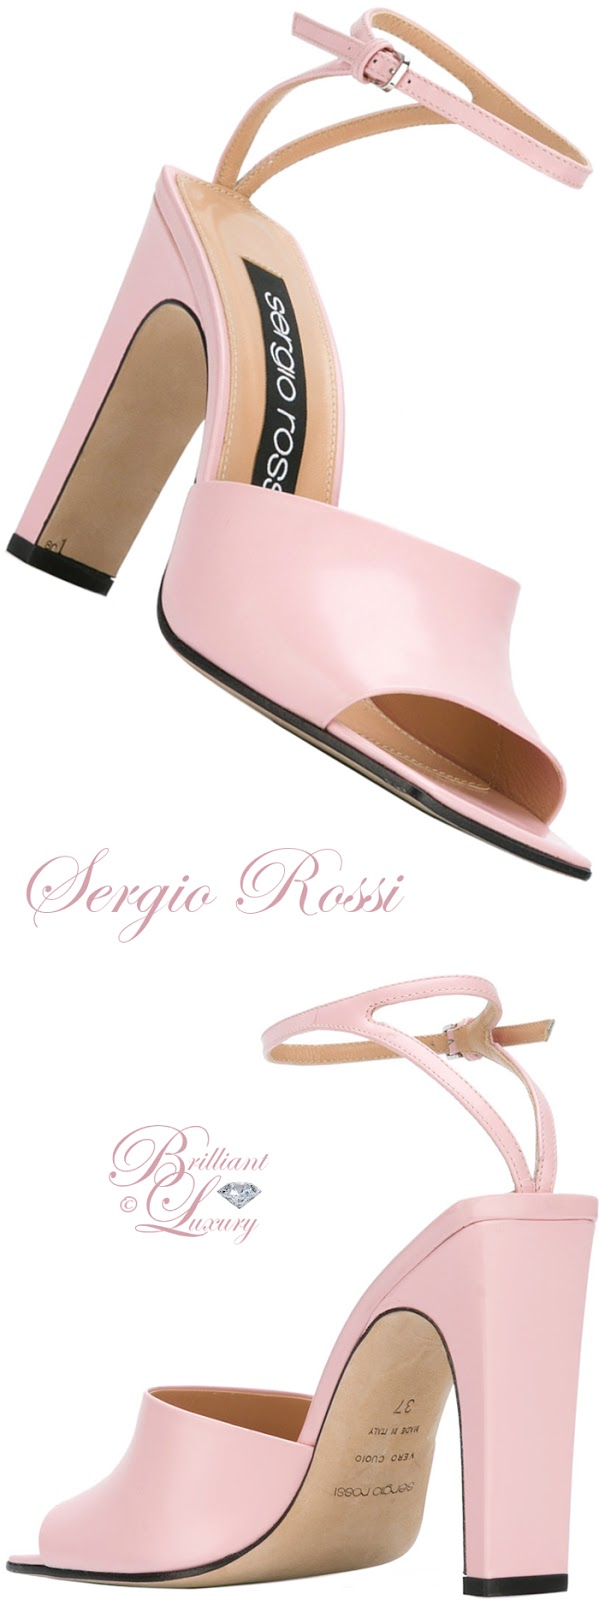 Brilliant Luxury ♦ Sergio Rossi Ankle Strap Sandals